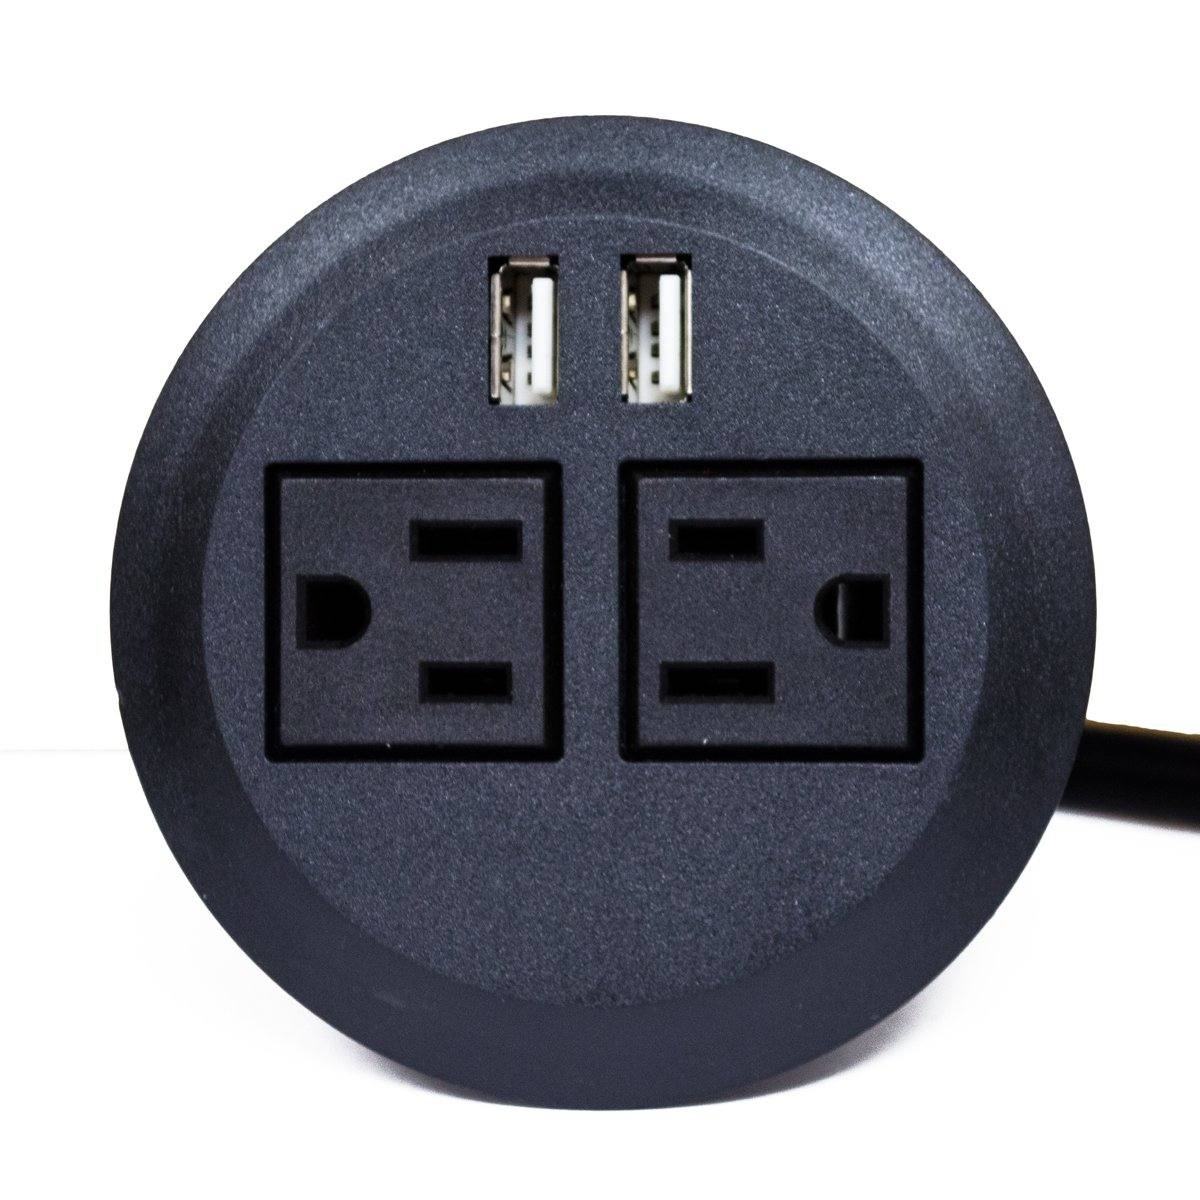 ApexDesk UL Certified Power Grommet (Black - Two Power Outlets, Two USB Ports) by ApexDesk